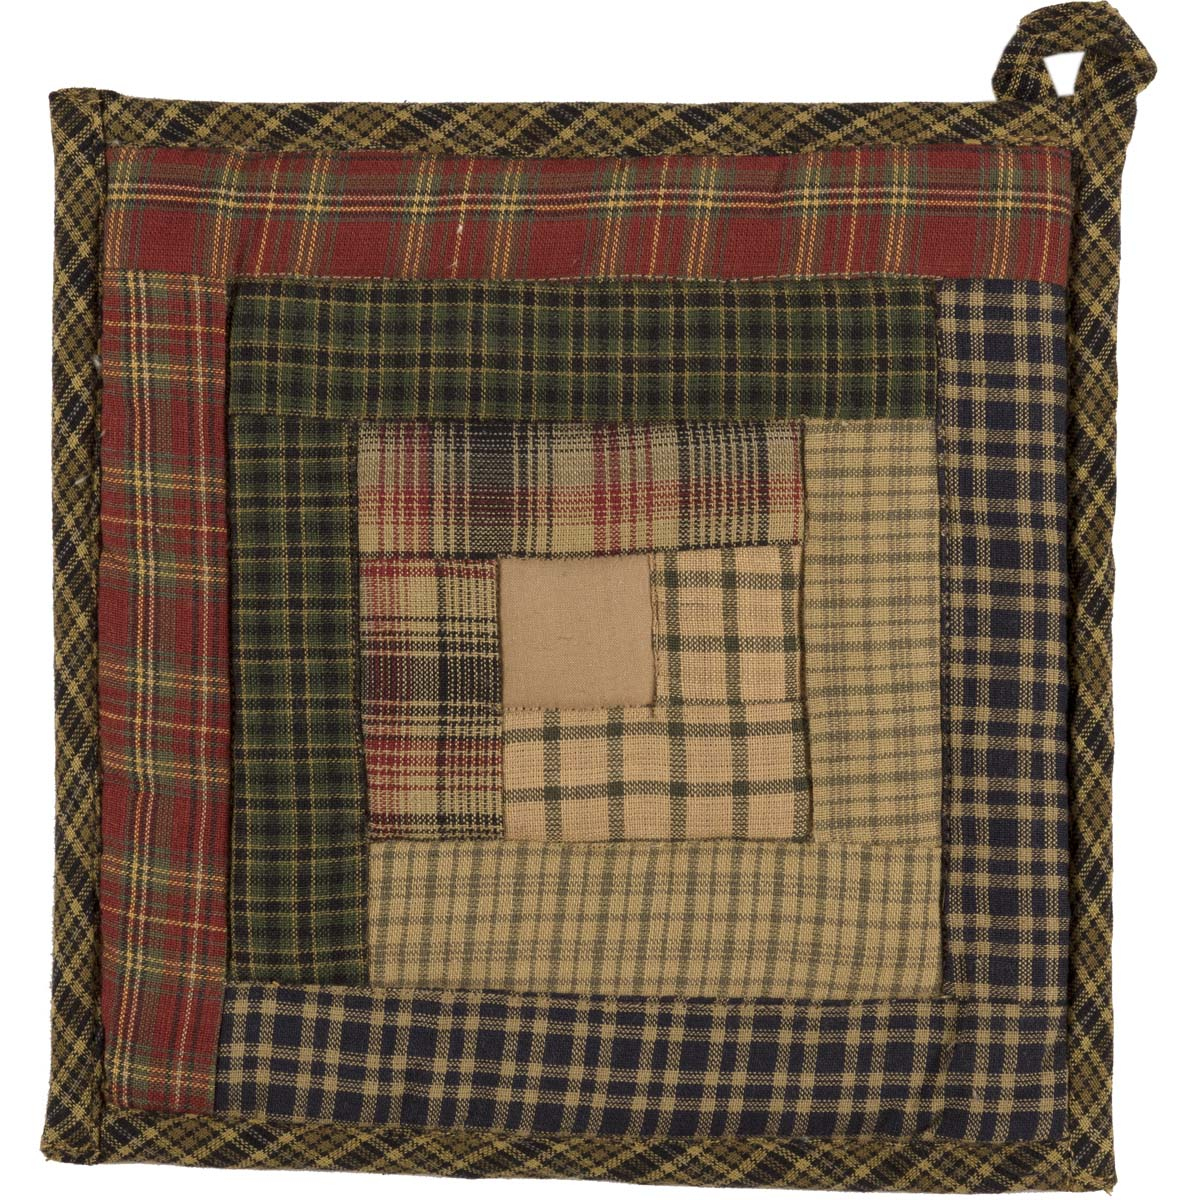 Tea-Cabin-Pot-Holder-Patchwork-8x8-image-2